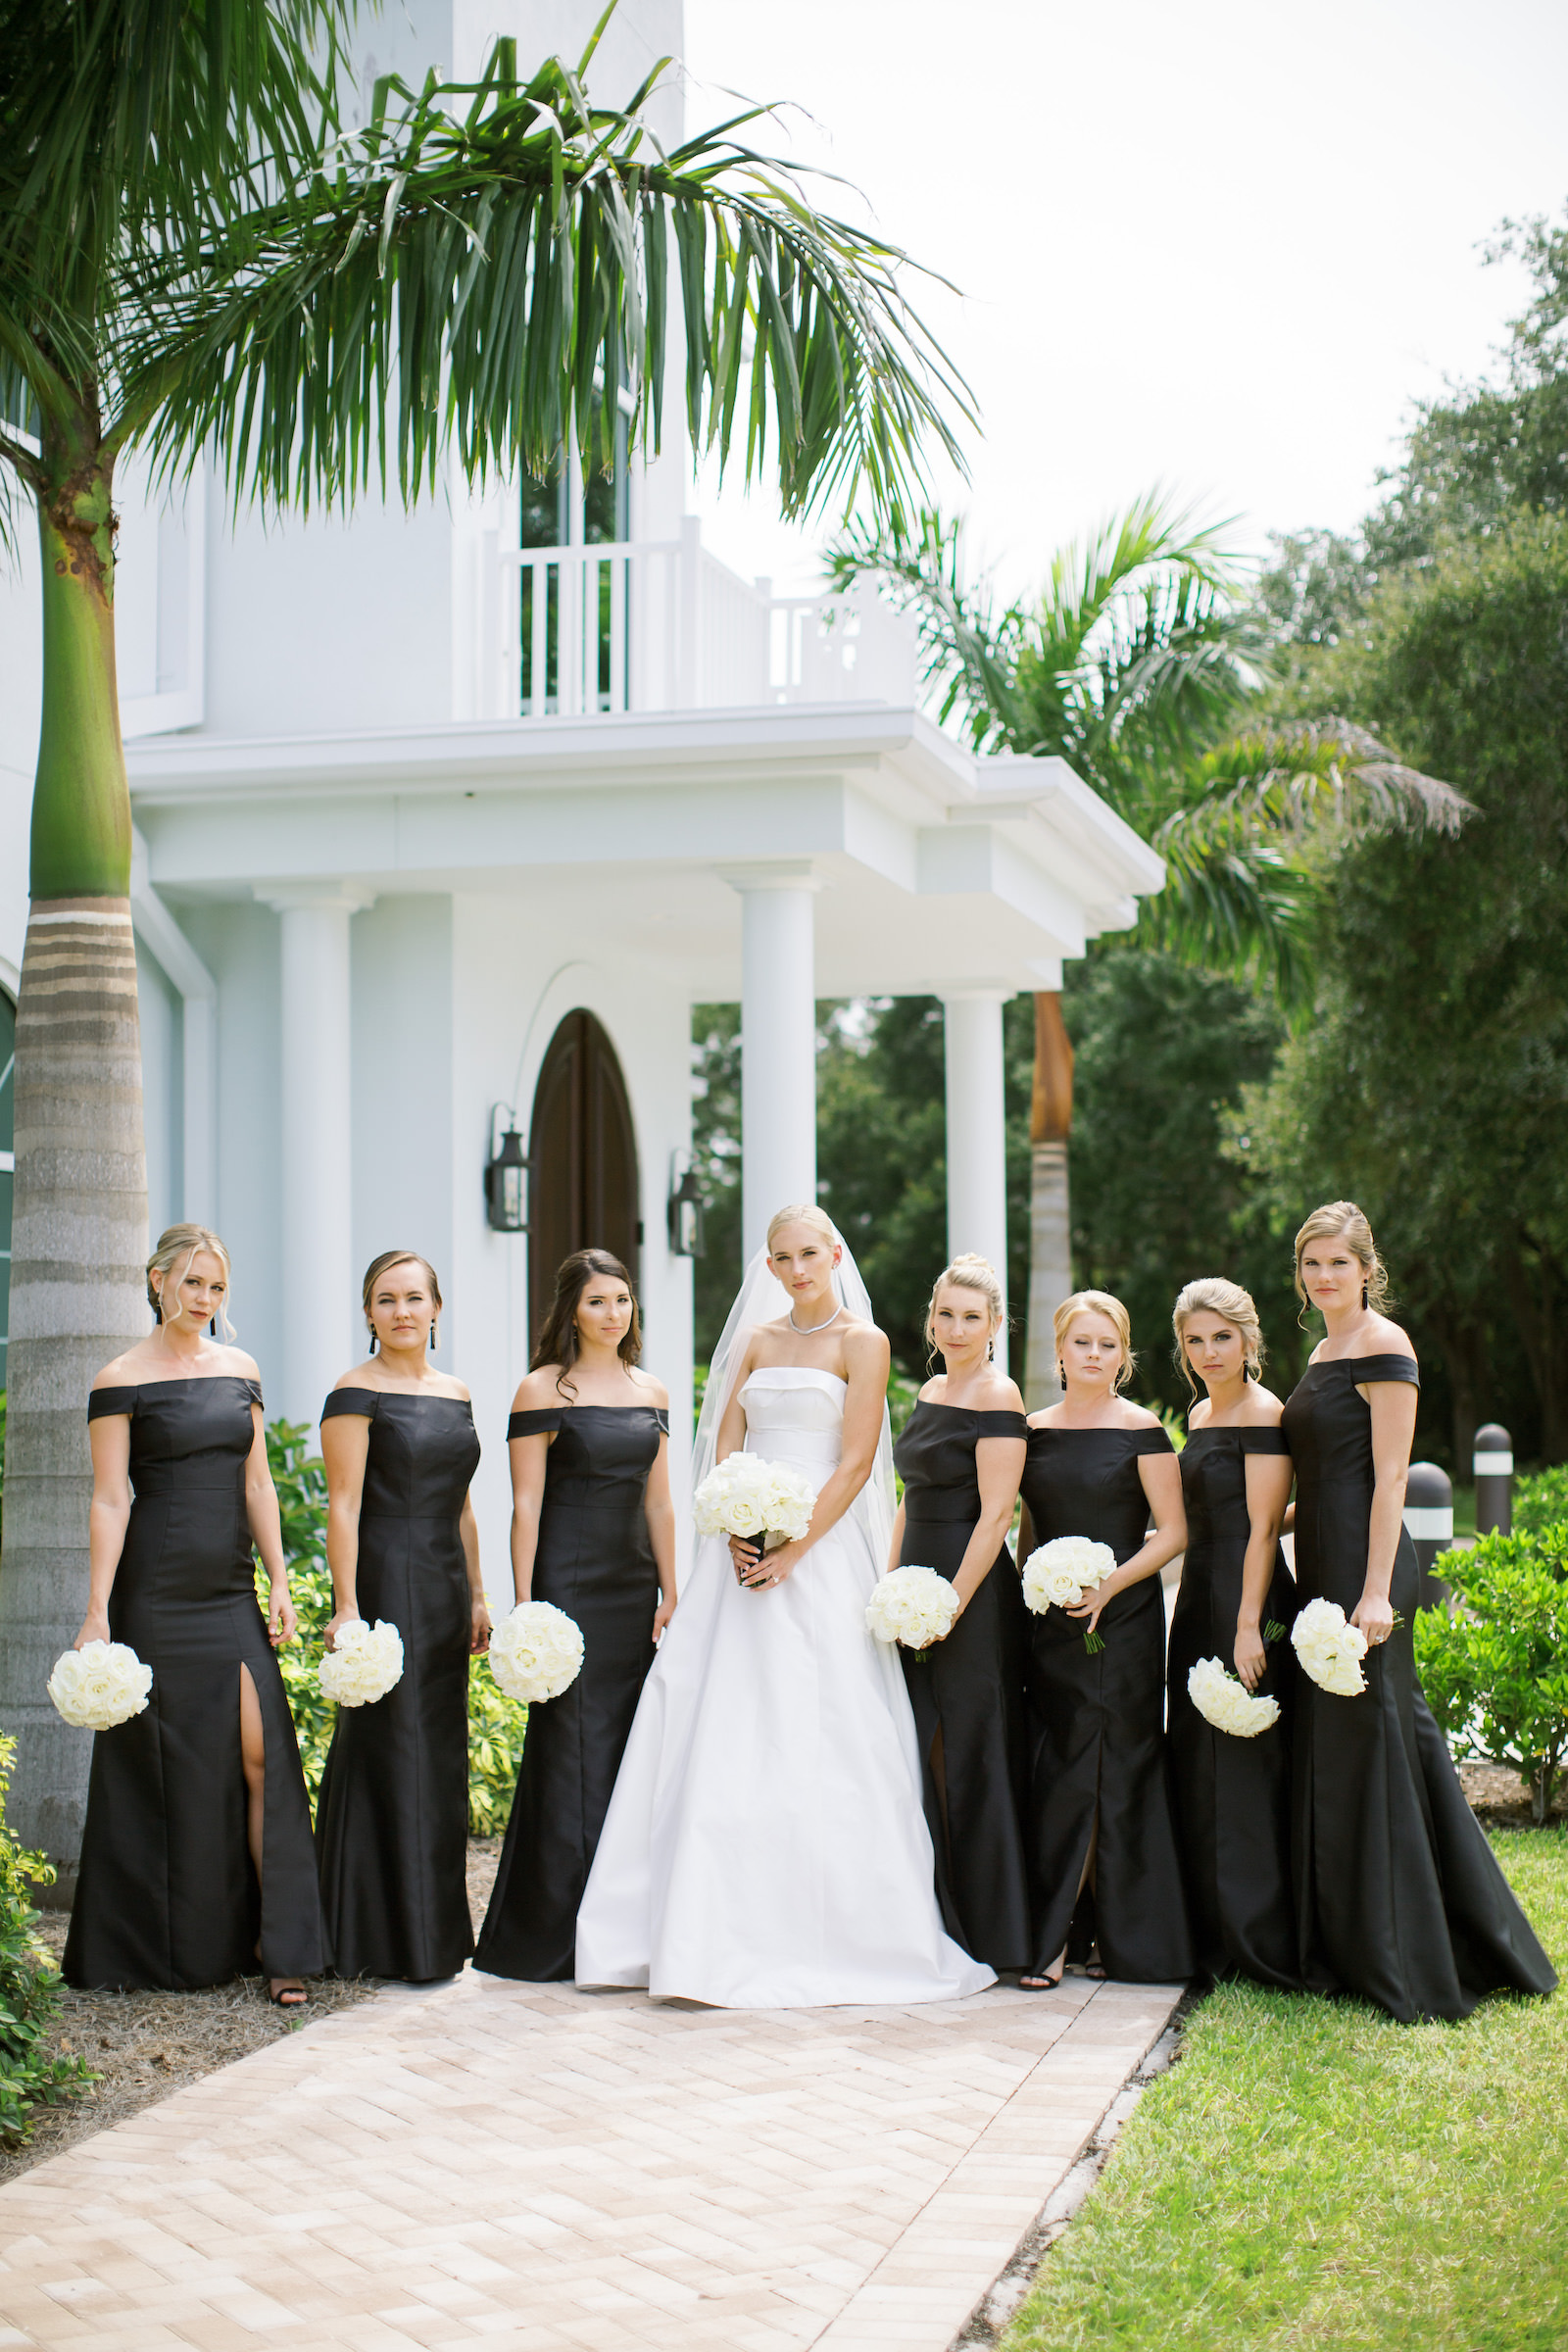 Classic Tampa Bride with Bridesmaids in Matching Off the Shoulder Dresses Holding White Floral Bouquets | Safety Harbor Traditional Church Wedding Venue Harborside Chapel